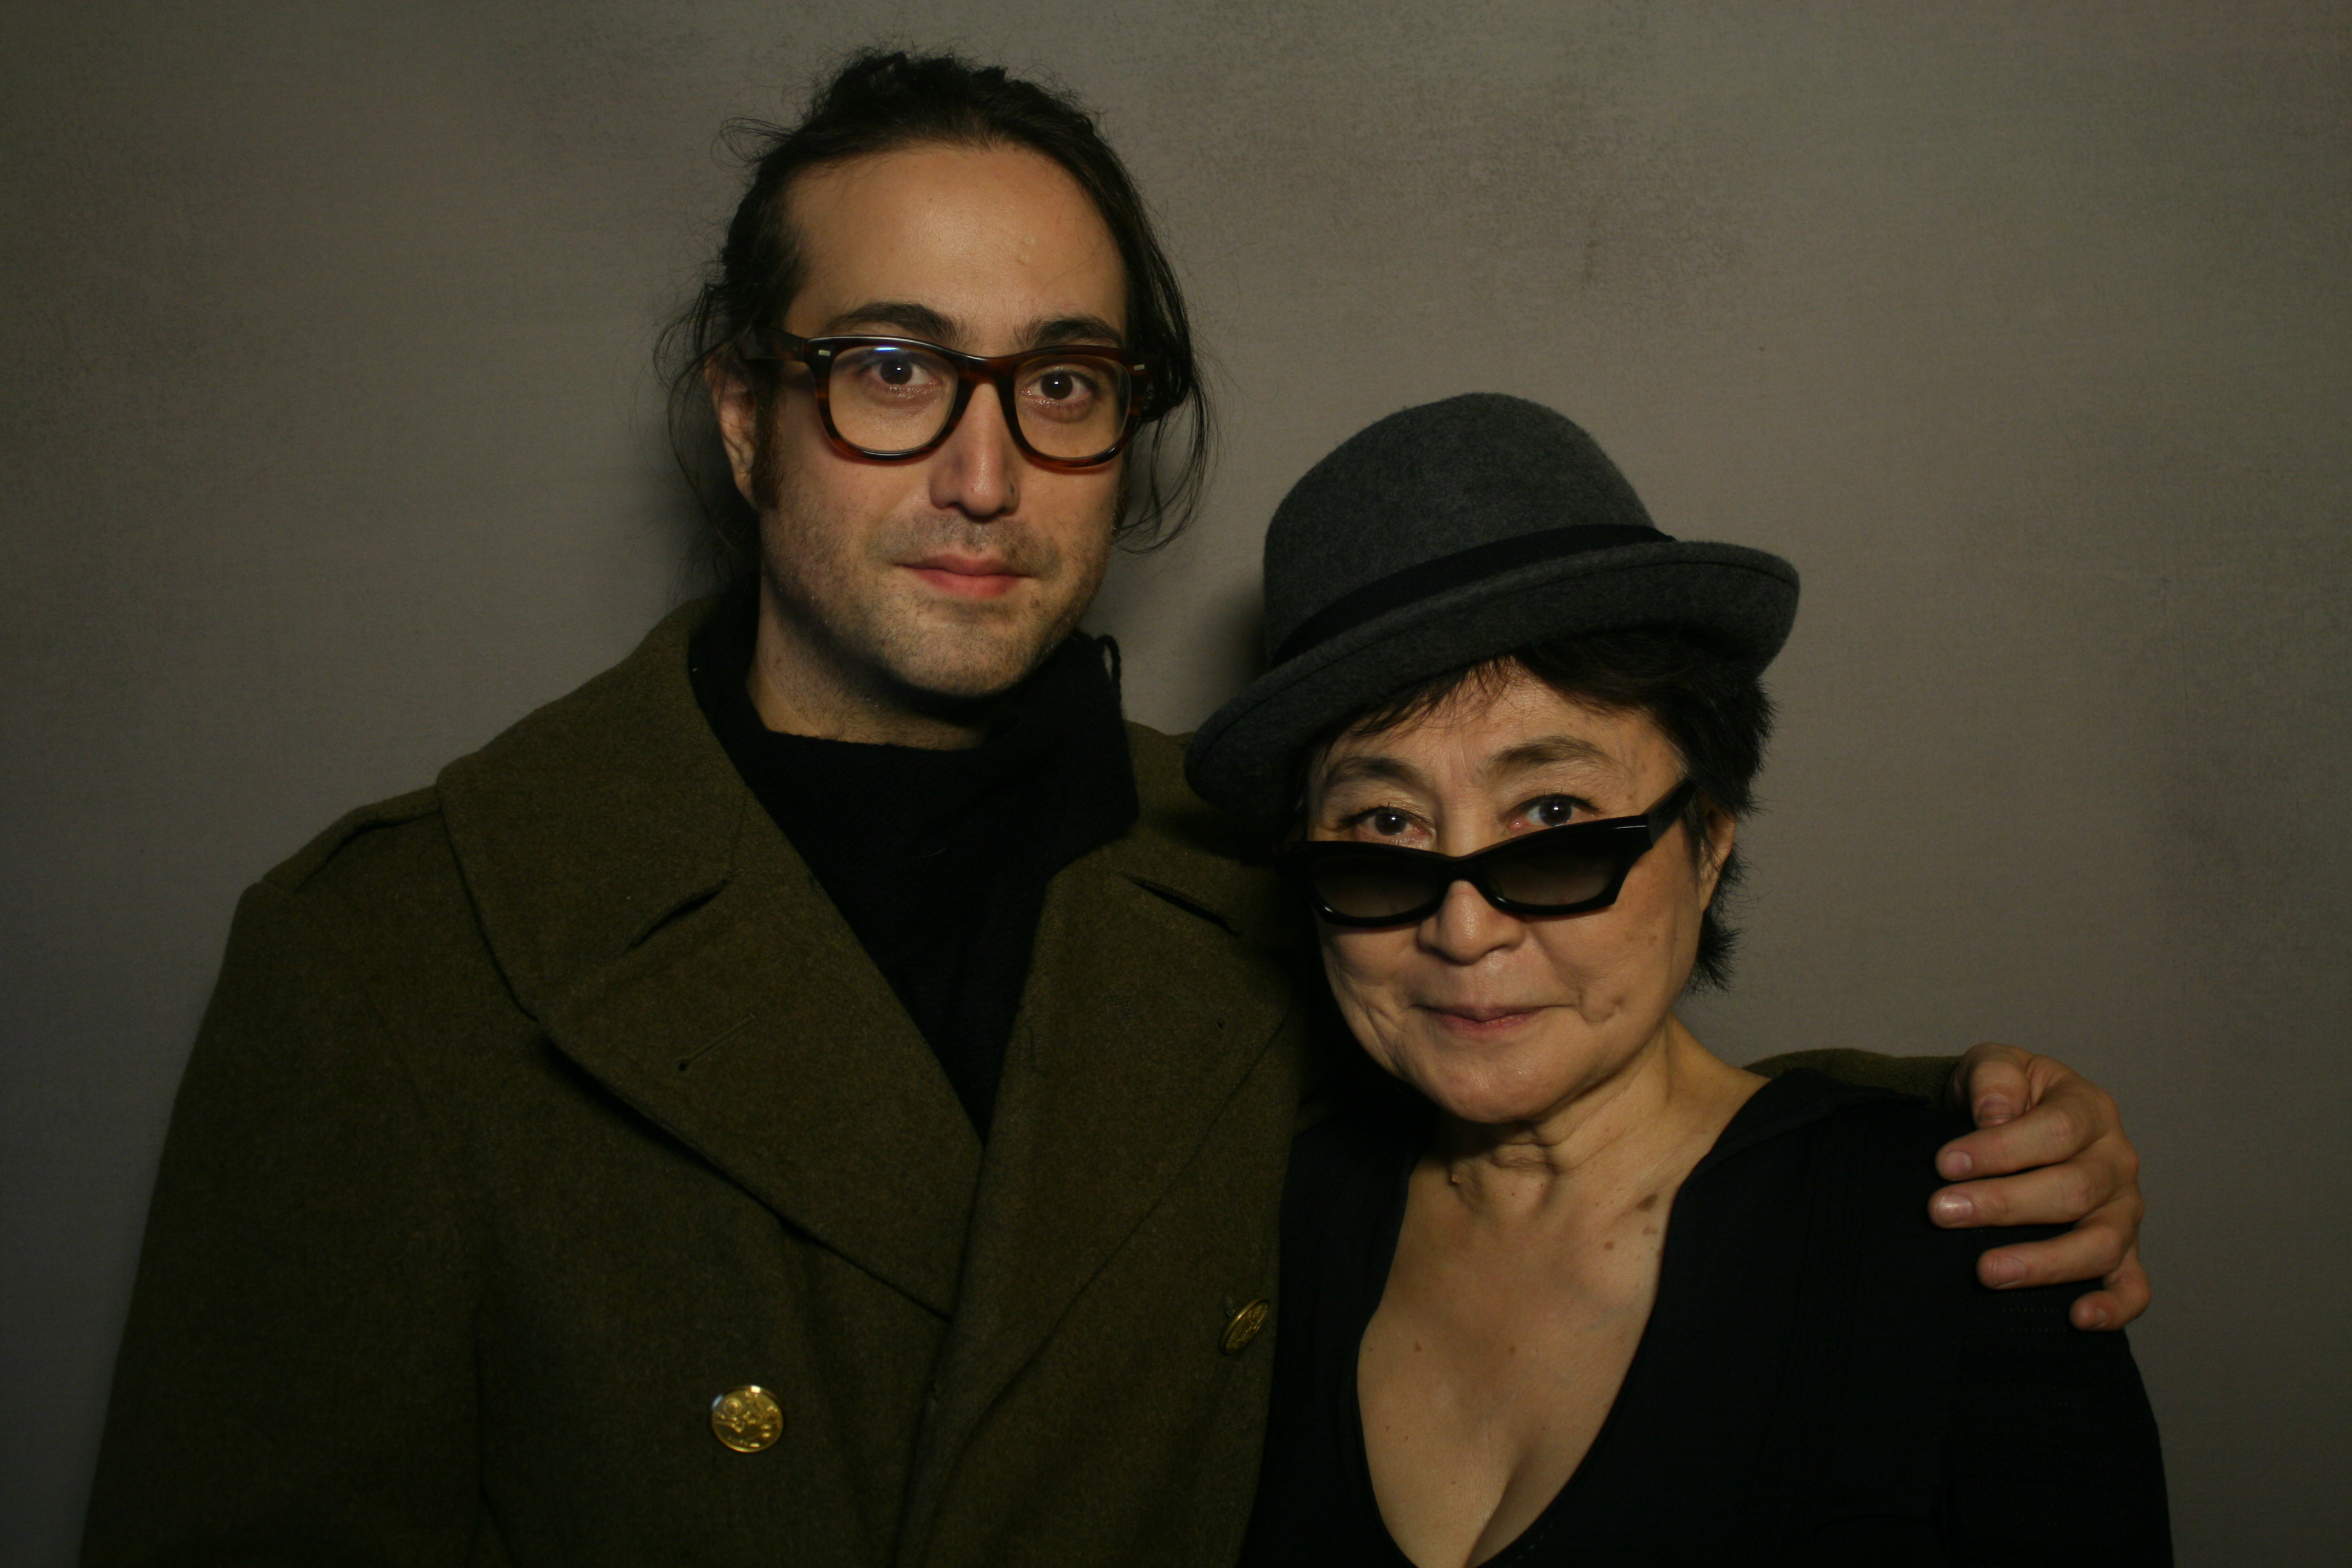 Sean Lennon and Yoko Ono: The StoryCorps Interview